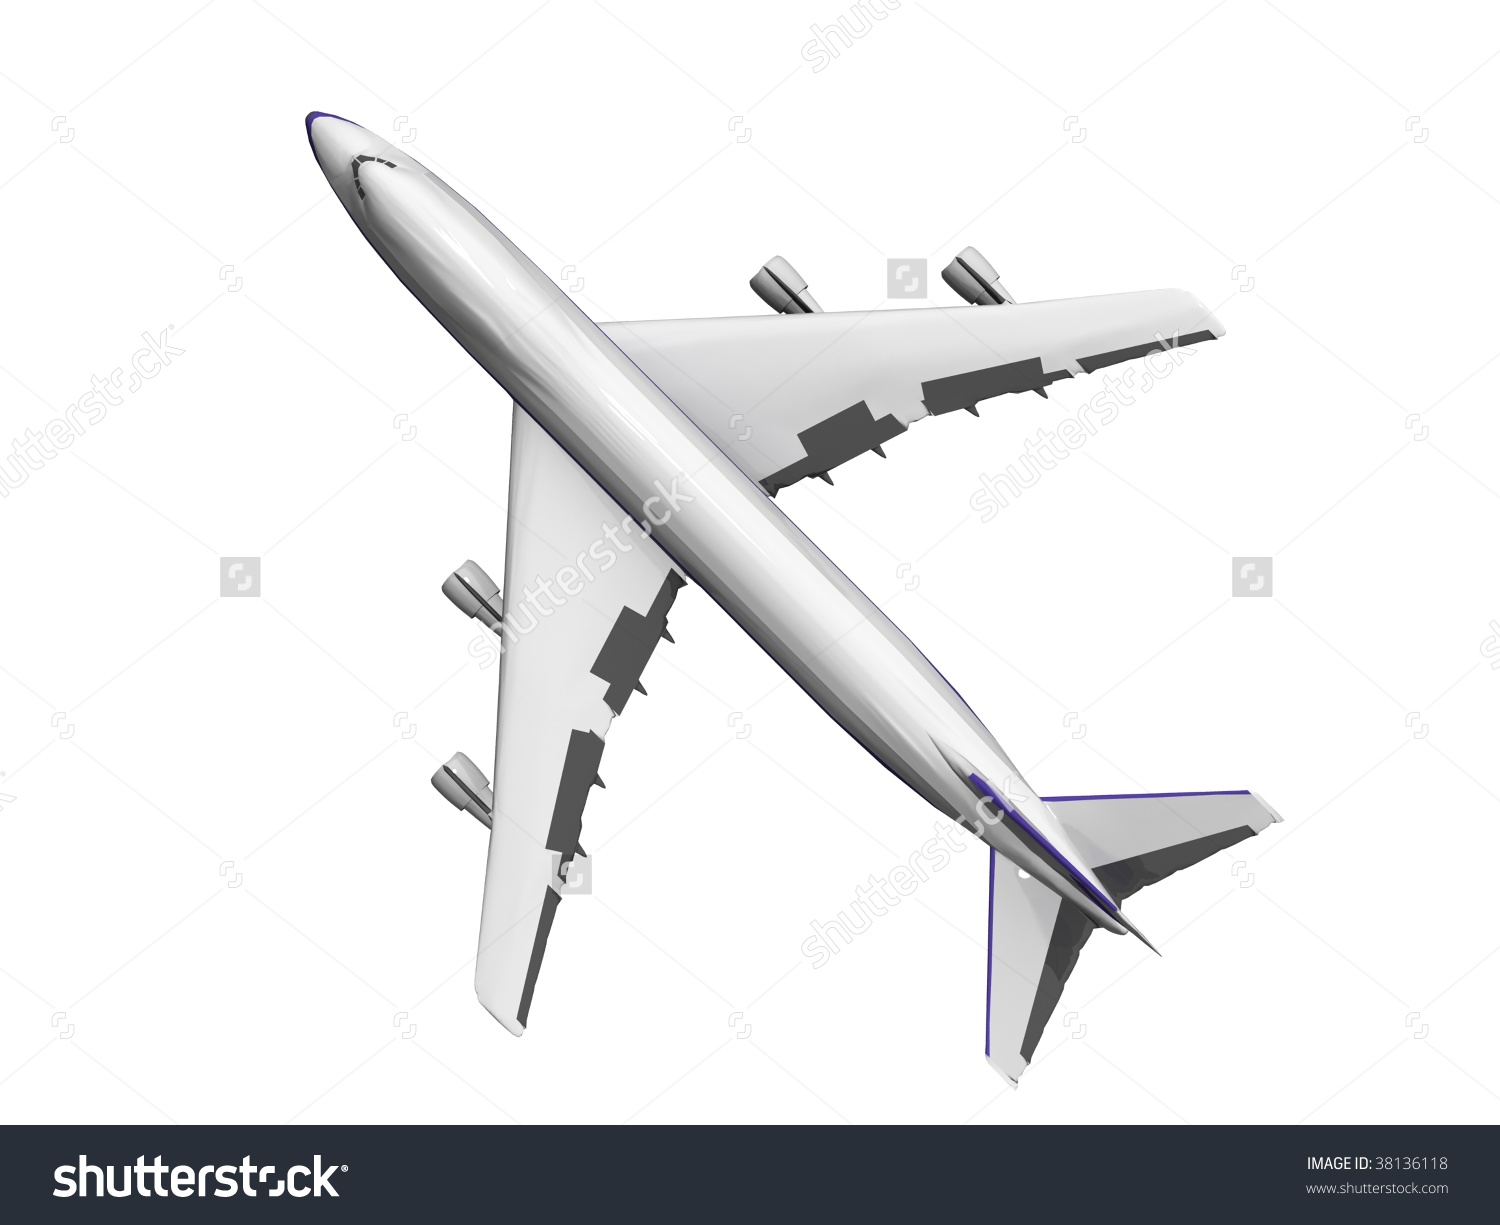 Airplane high wing plane top view clipart.